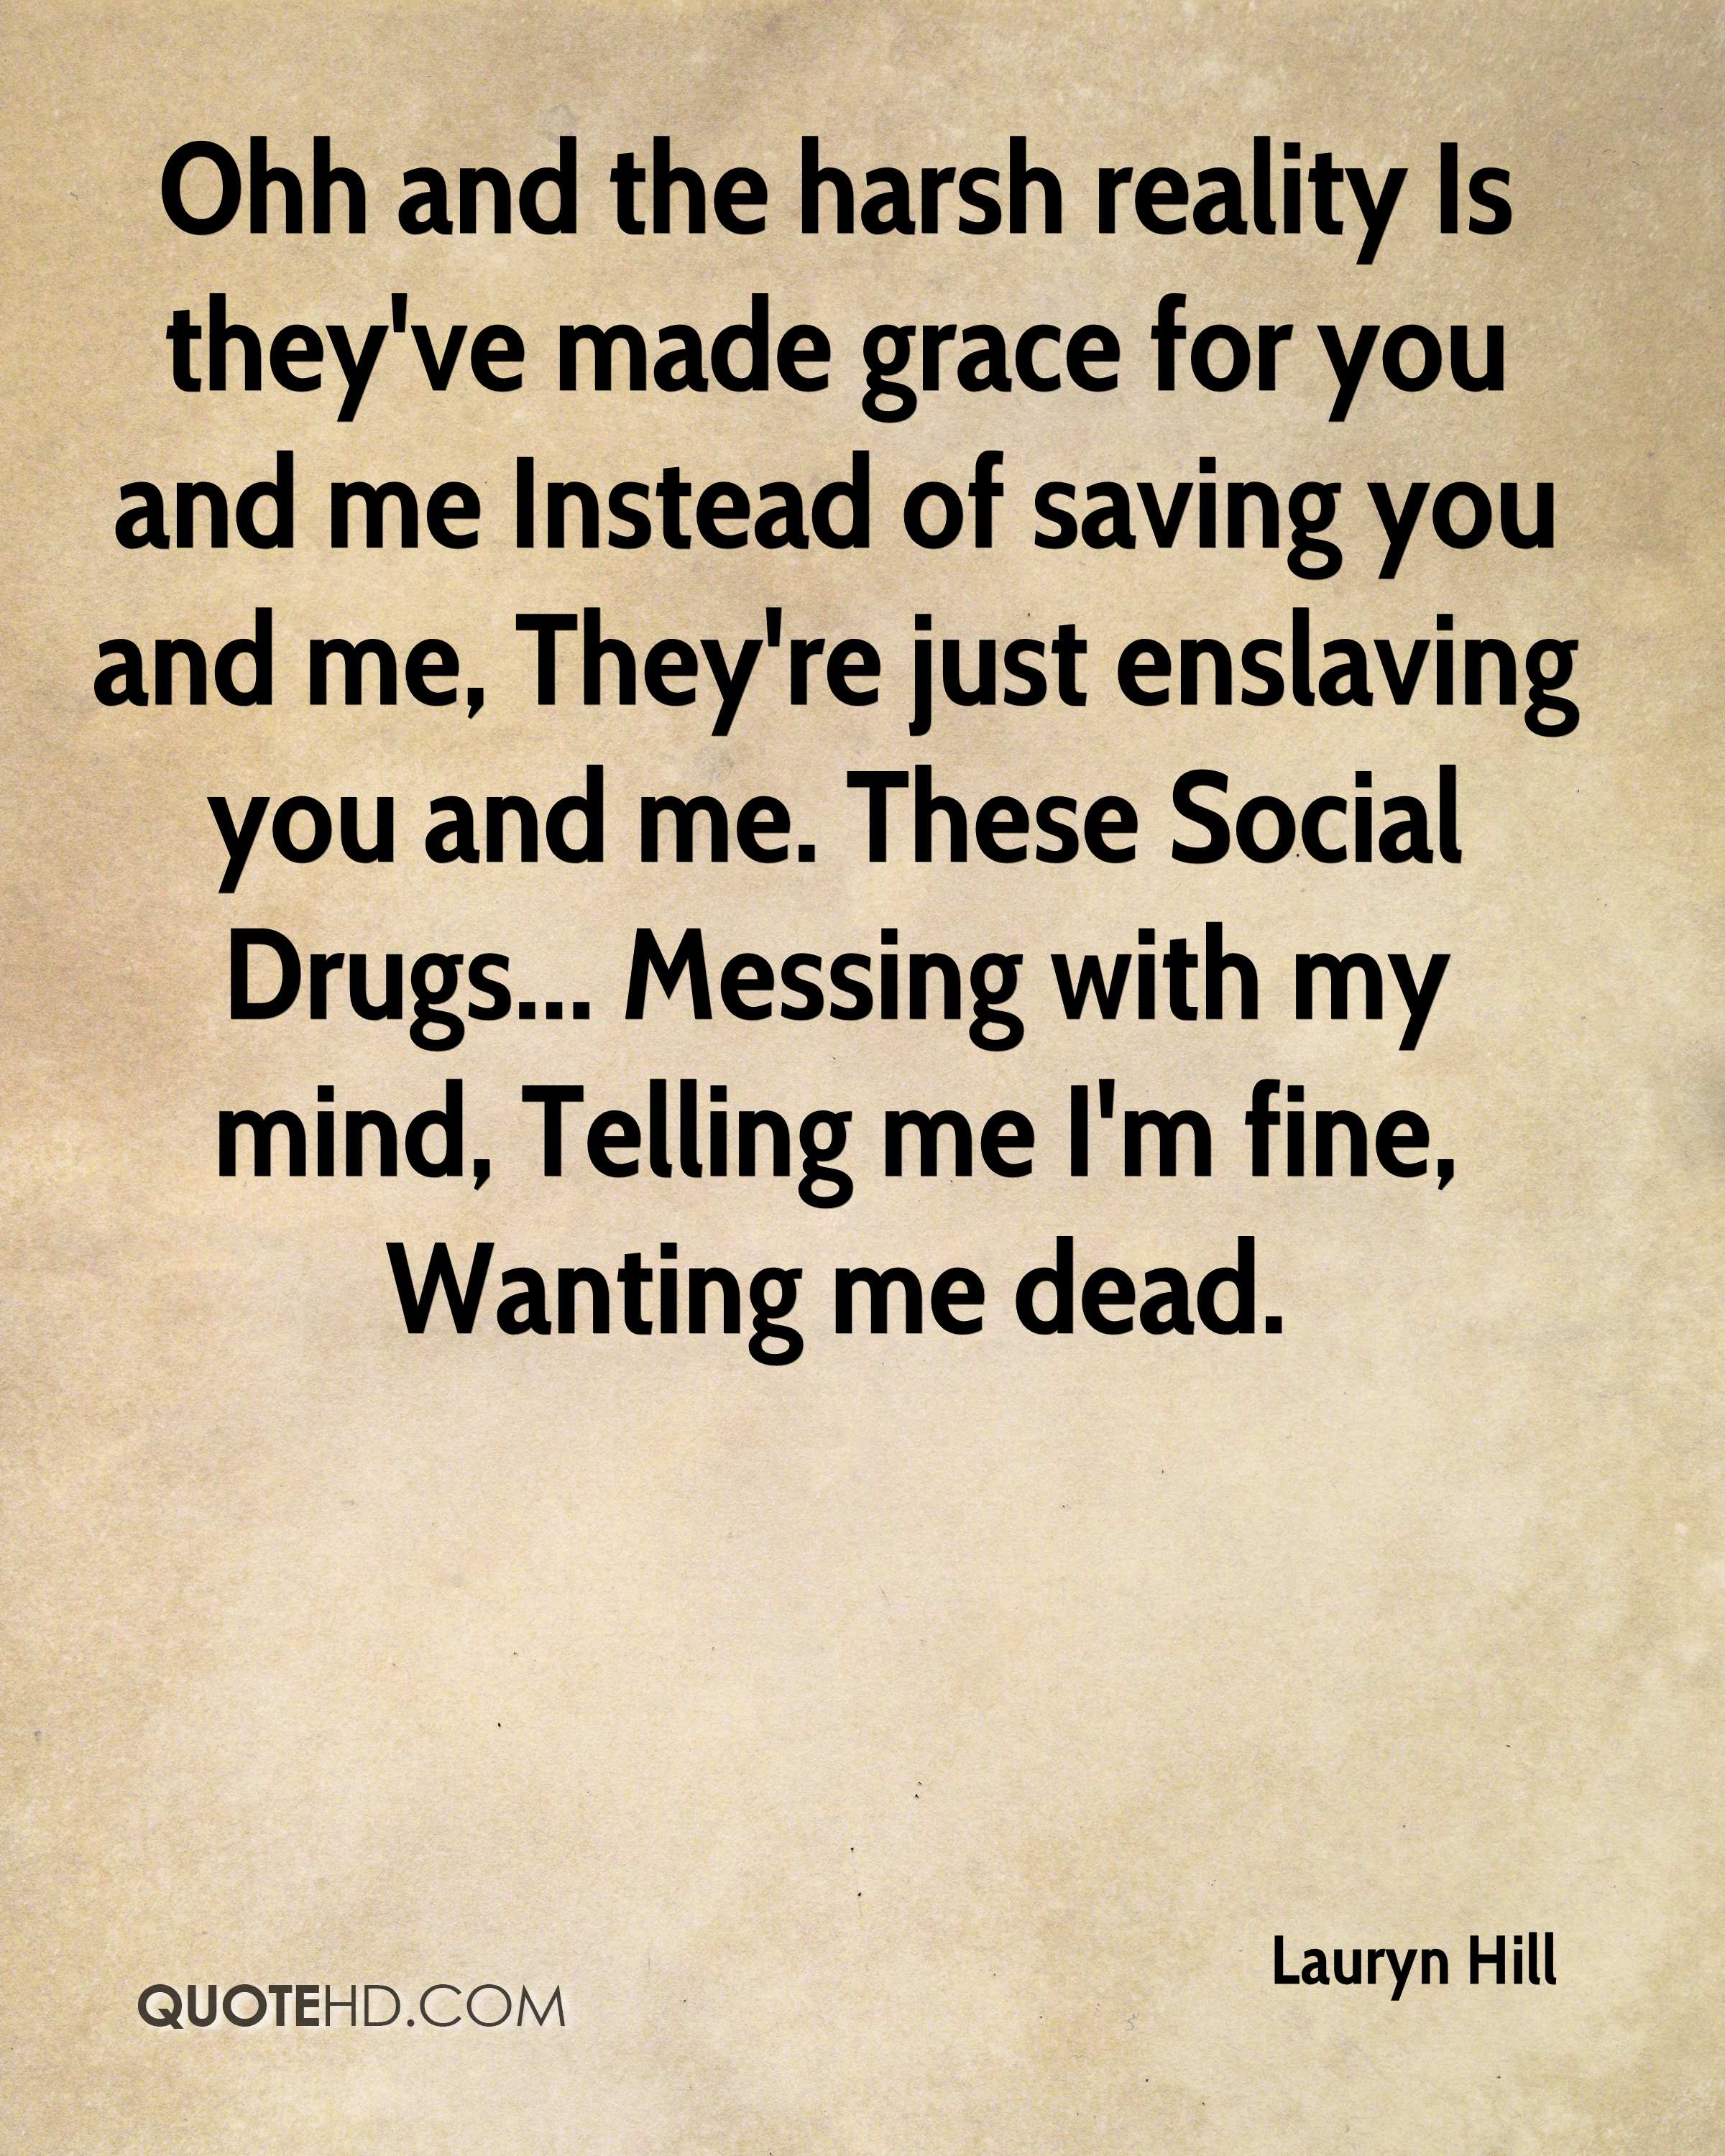 Ohh and the harsh reality Is they've made grace for you and me Instead of saving you and me, They're just enslaving you and me. These Social Drugs... Messing with my mind, Telling me I'm fine, Wanting me dead.